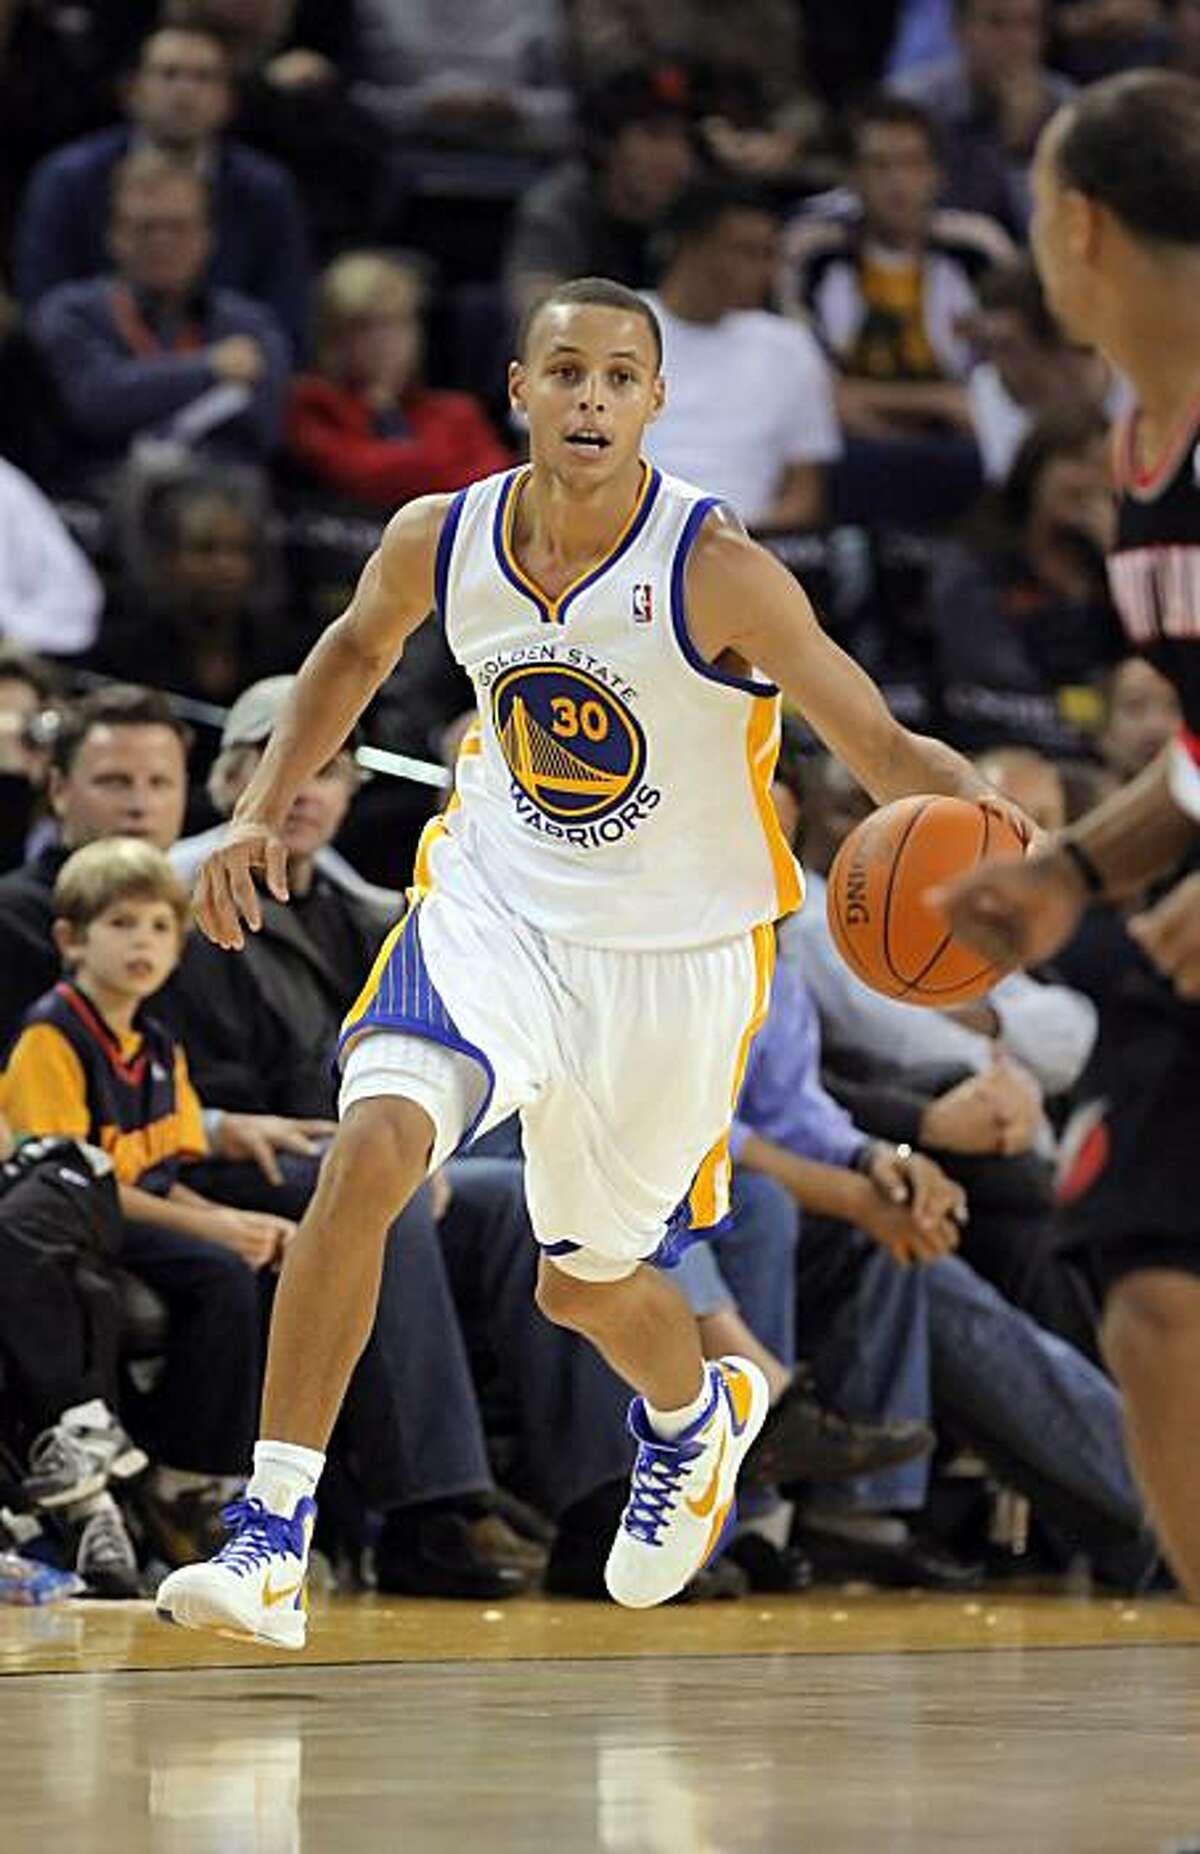 Stephen Curry brings the ball back after a steal in the second half. The Golden State Warriors played the Portland Trail Blazers at Oracle Arena in Oakland, Calif., on Monday, October 18, 2010, defeating the Blazers 100-78.